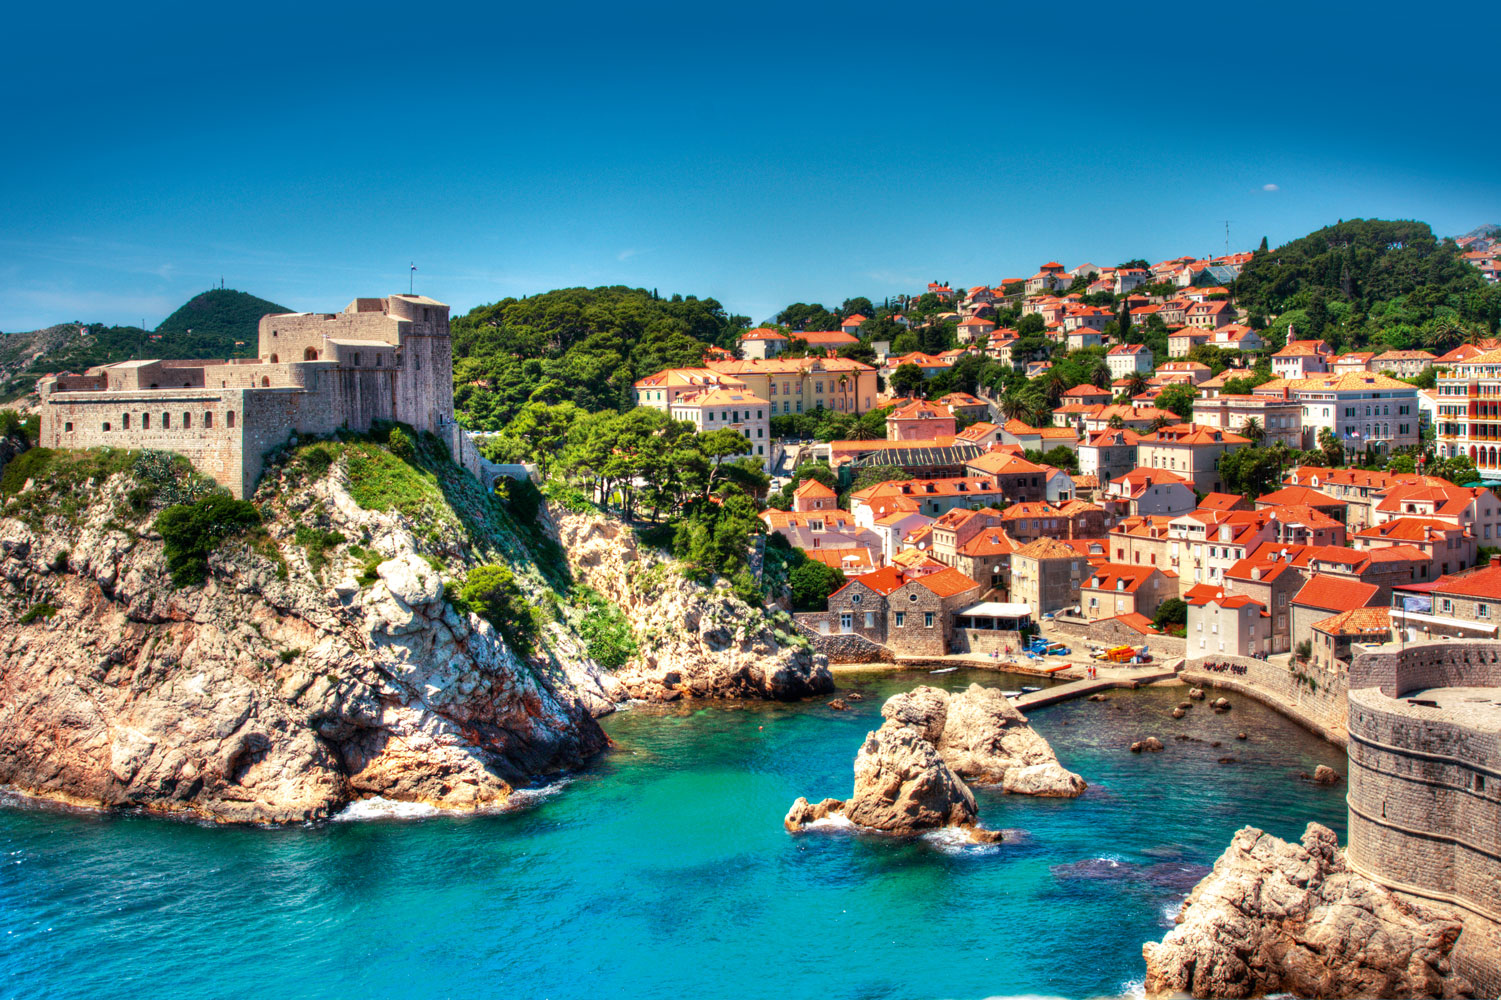 Dubrovnik, Croatia – Tourist Destinations